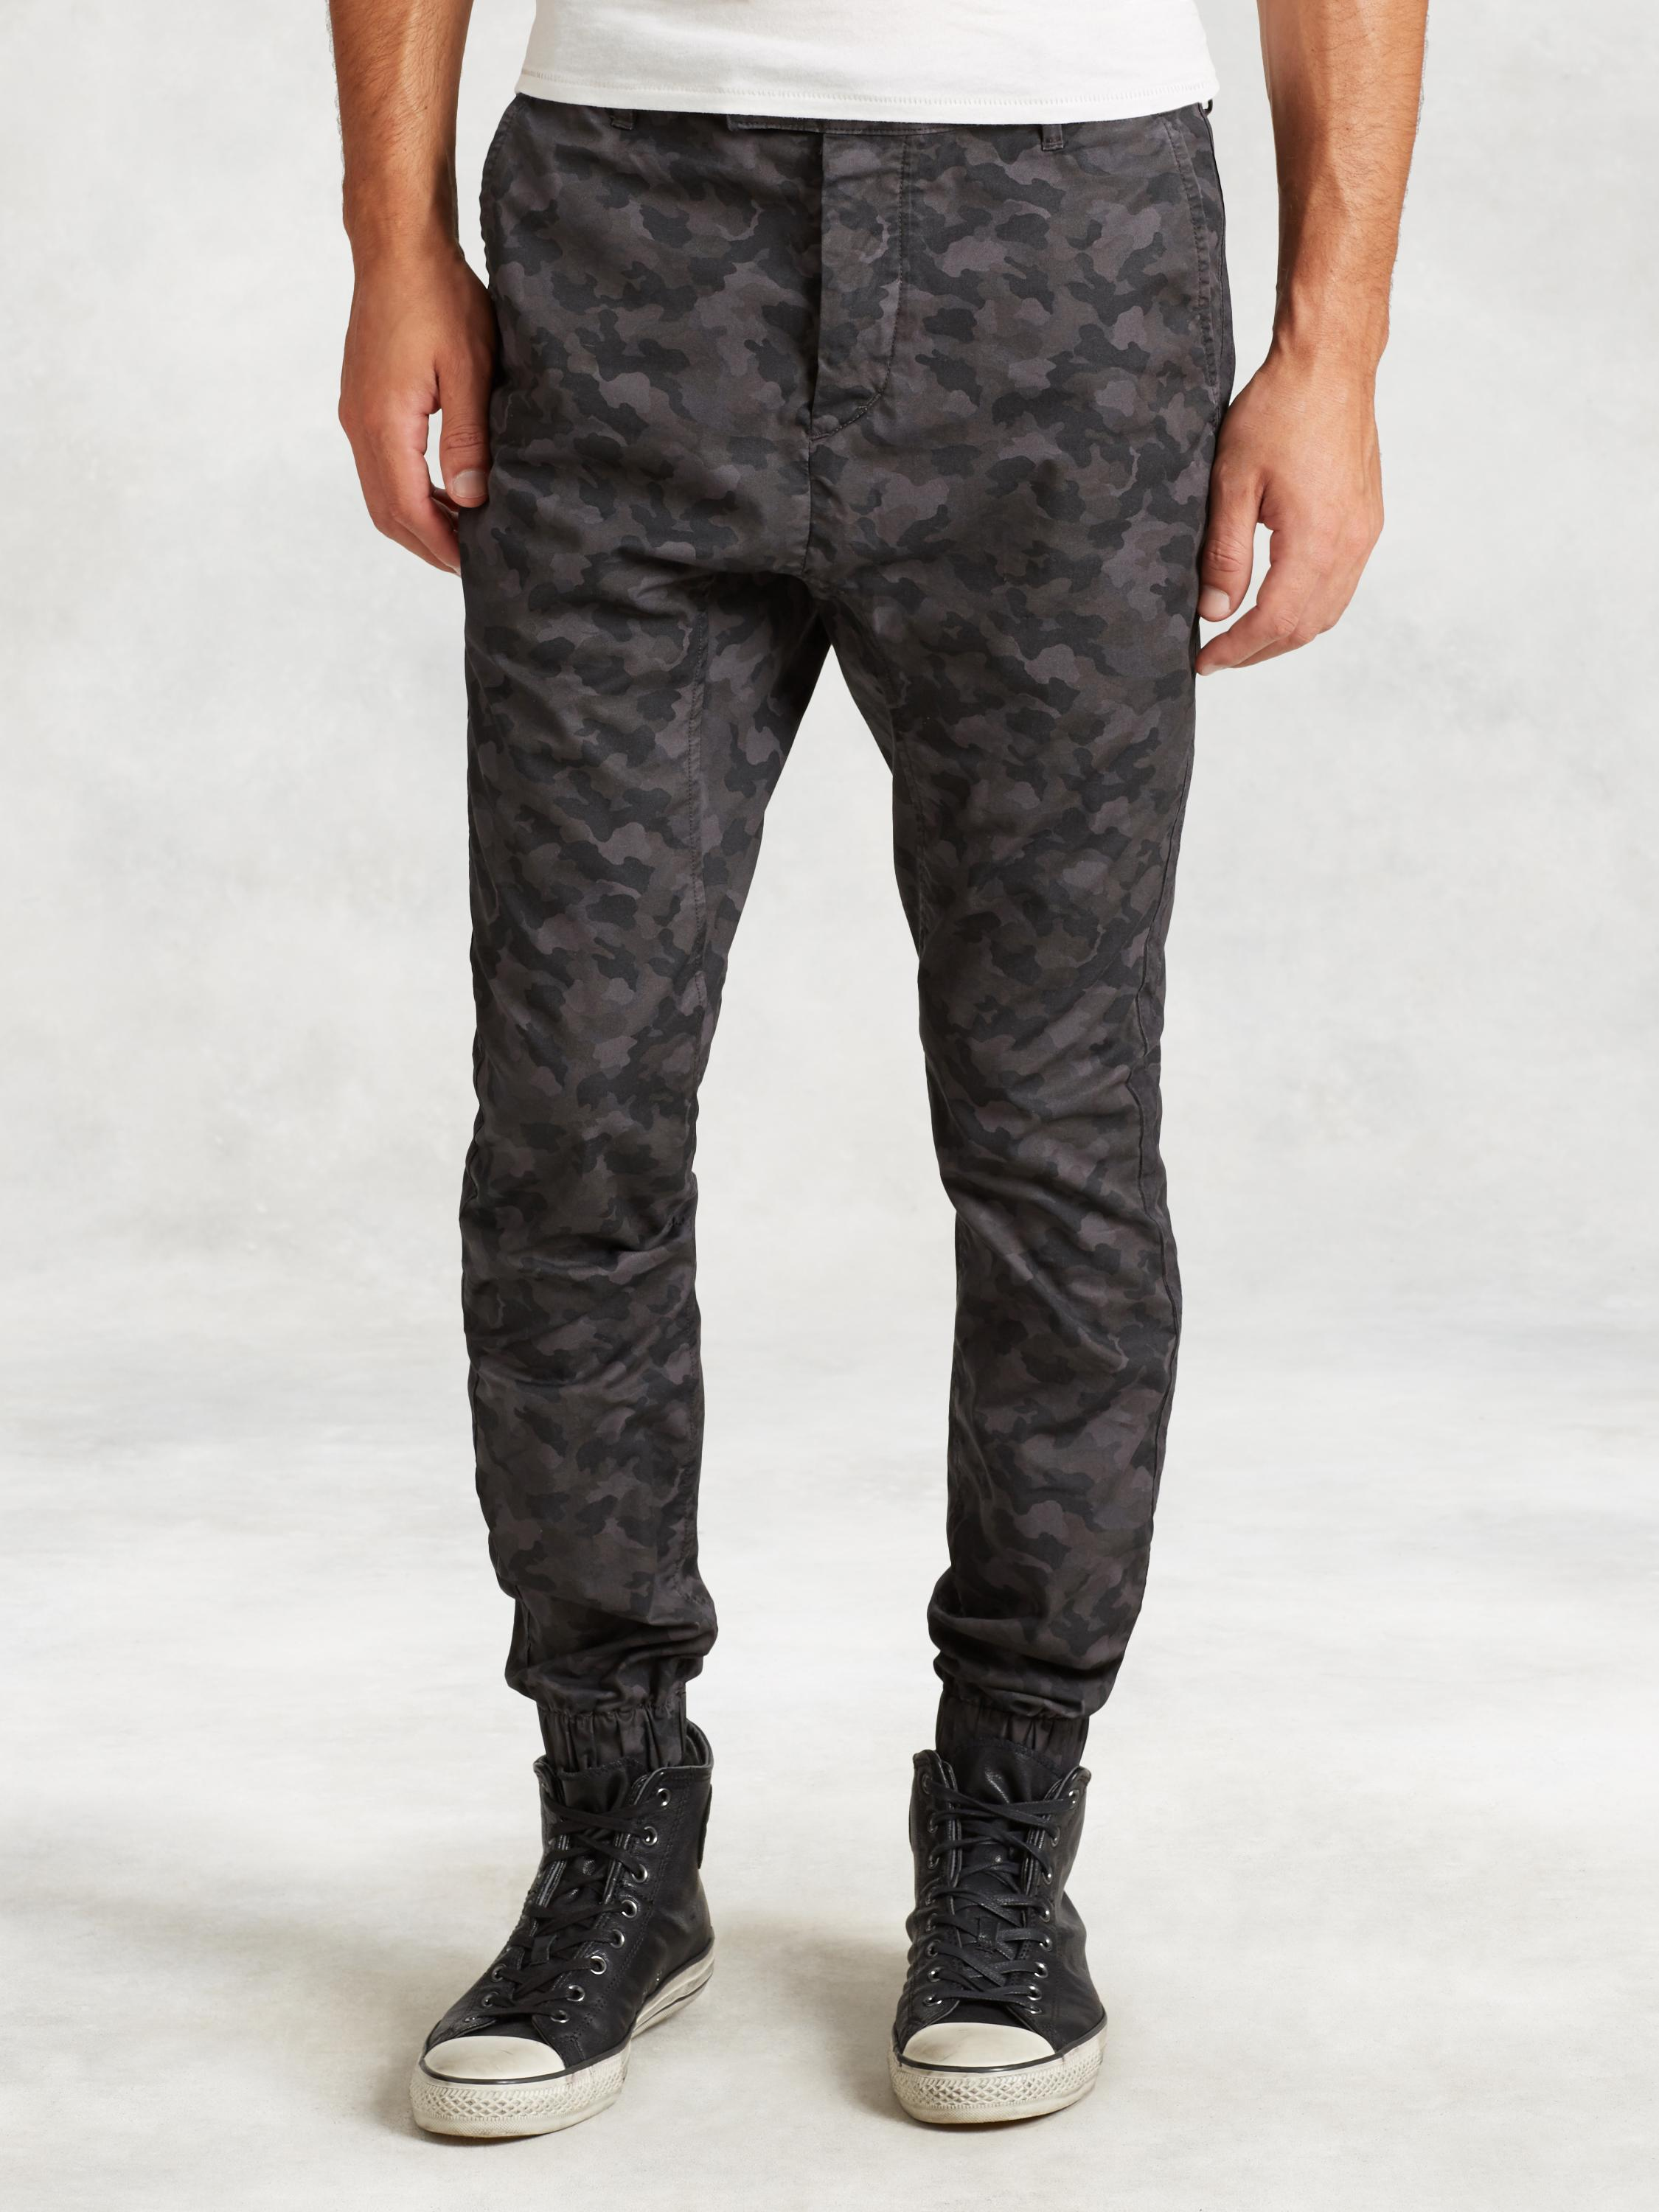 Cotton Camo Everly Pant